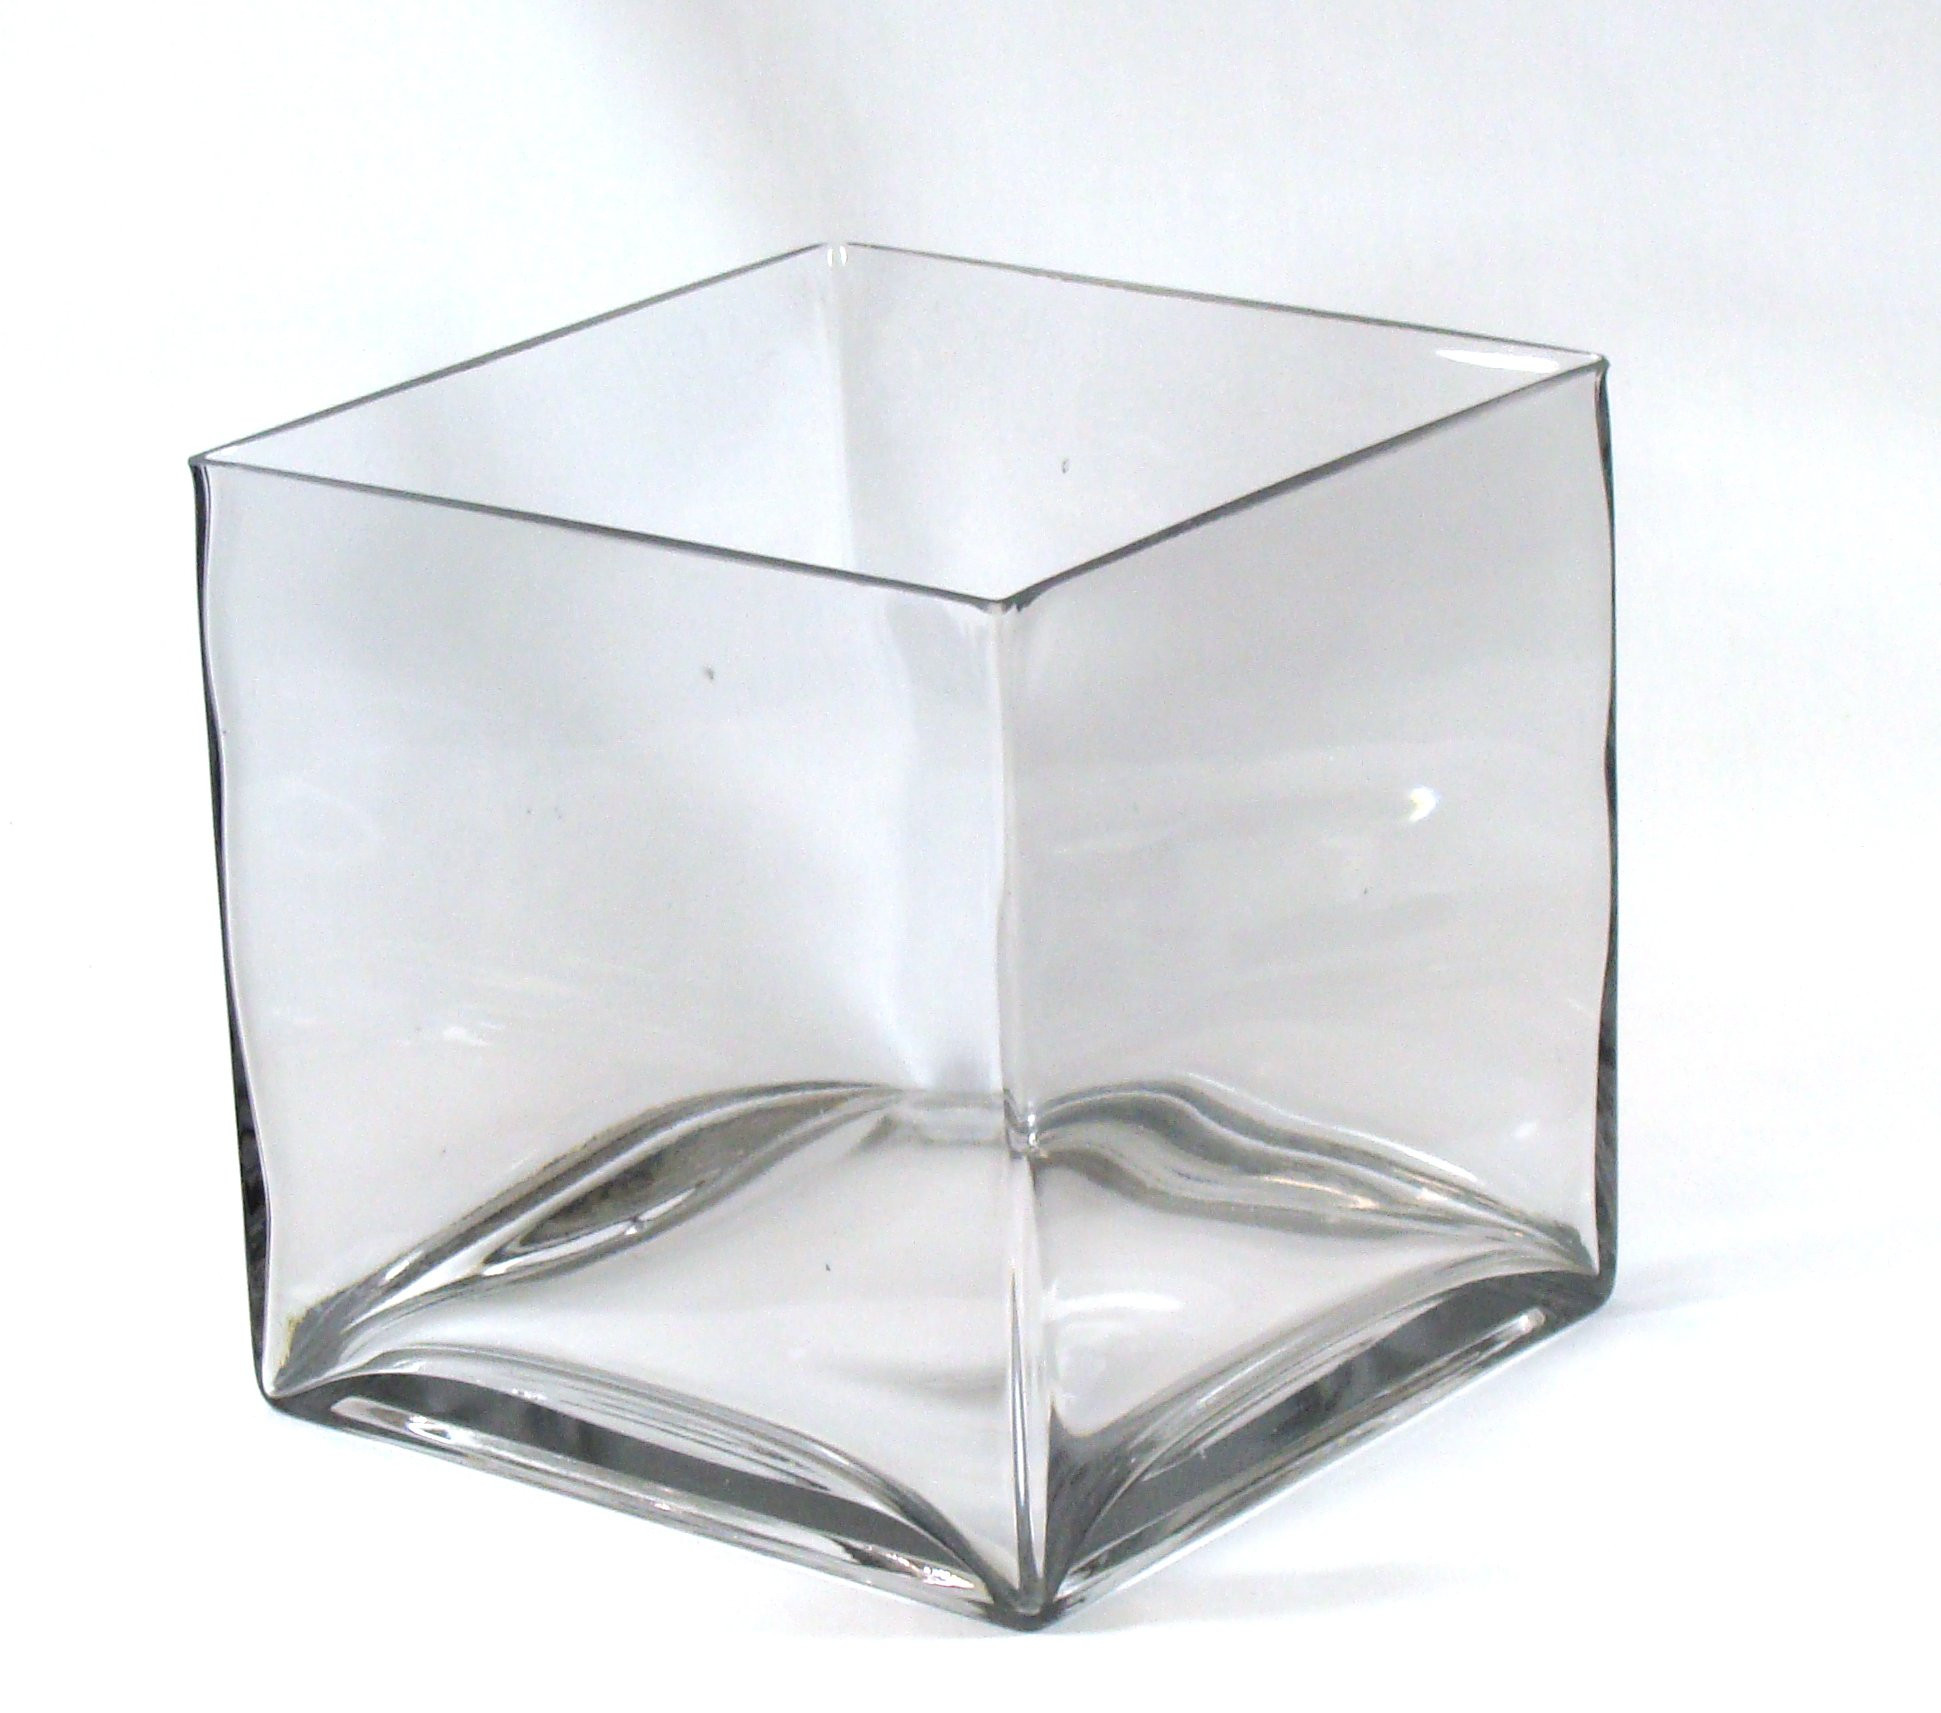 giant clear glass vase of buy 8 inch round large glass vase 8 clear cylinder oversize regarding 8 square large glass vase 8 inch clear cube oversize centerpiece 8x8x8 candleholder